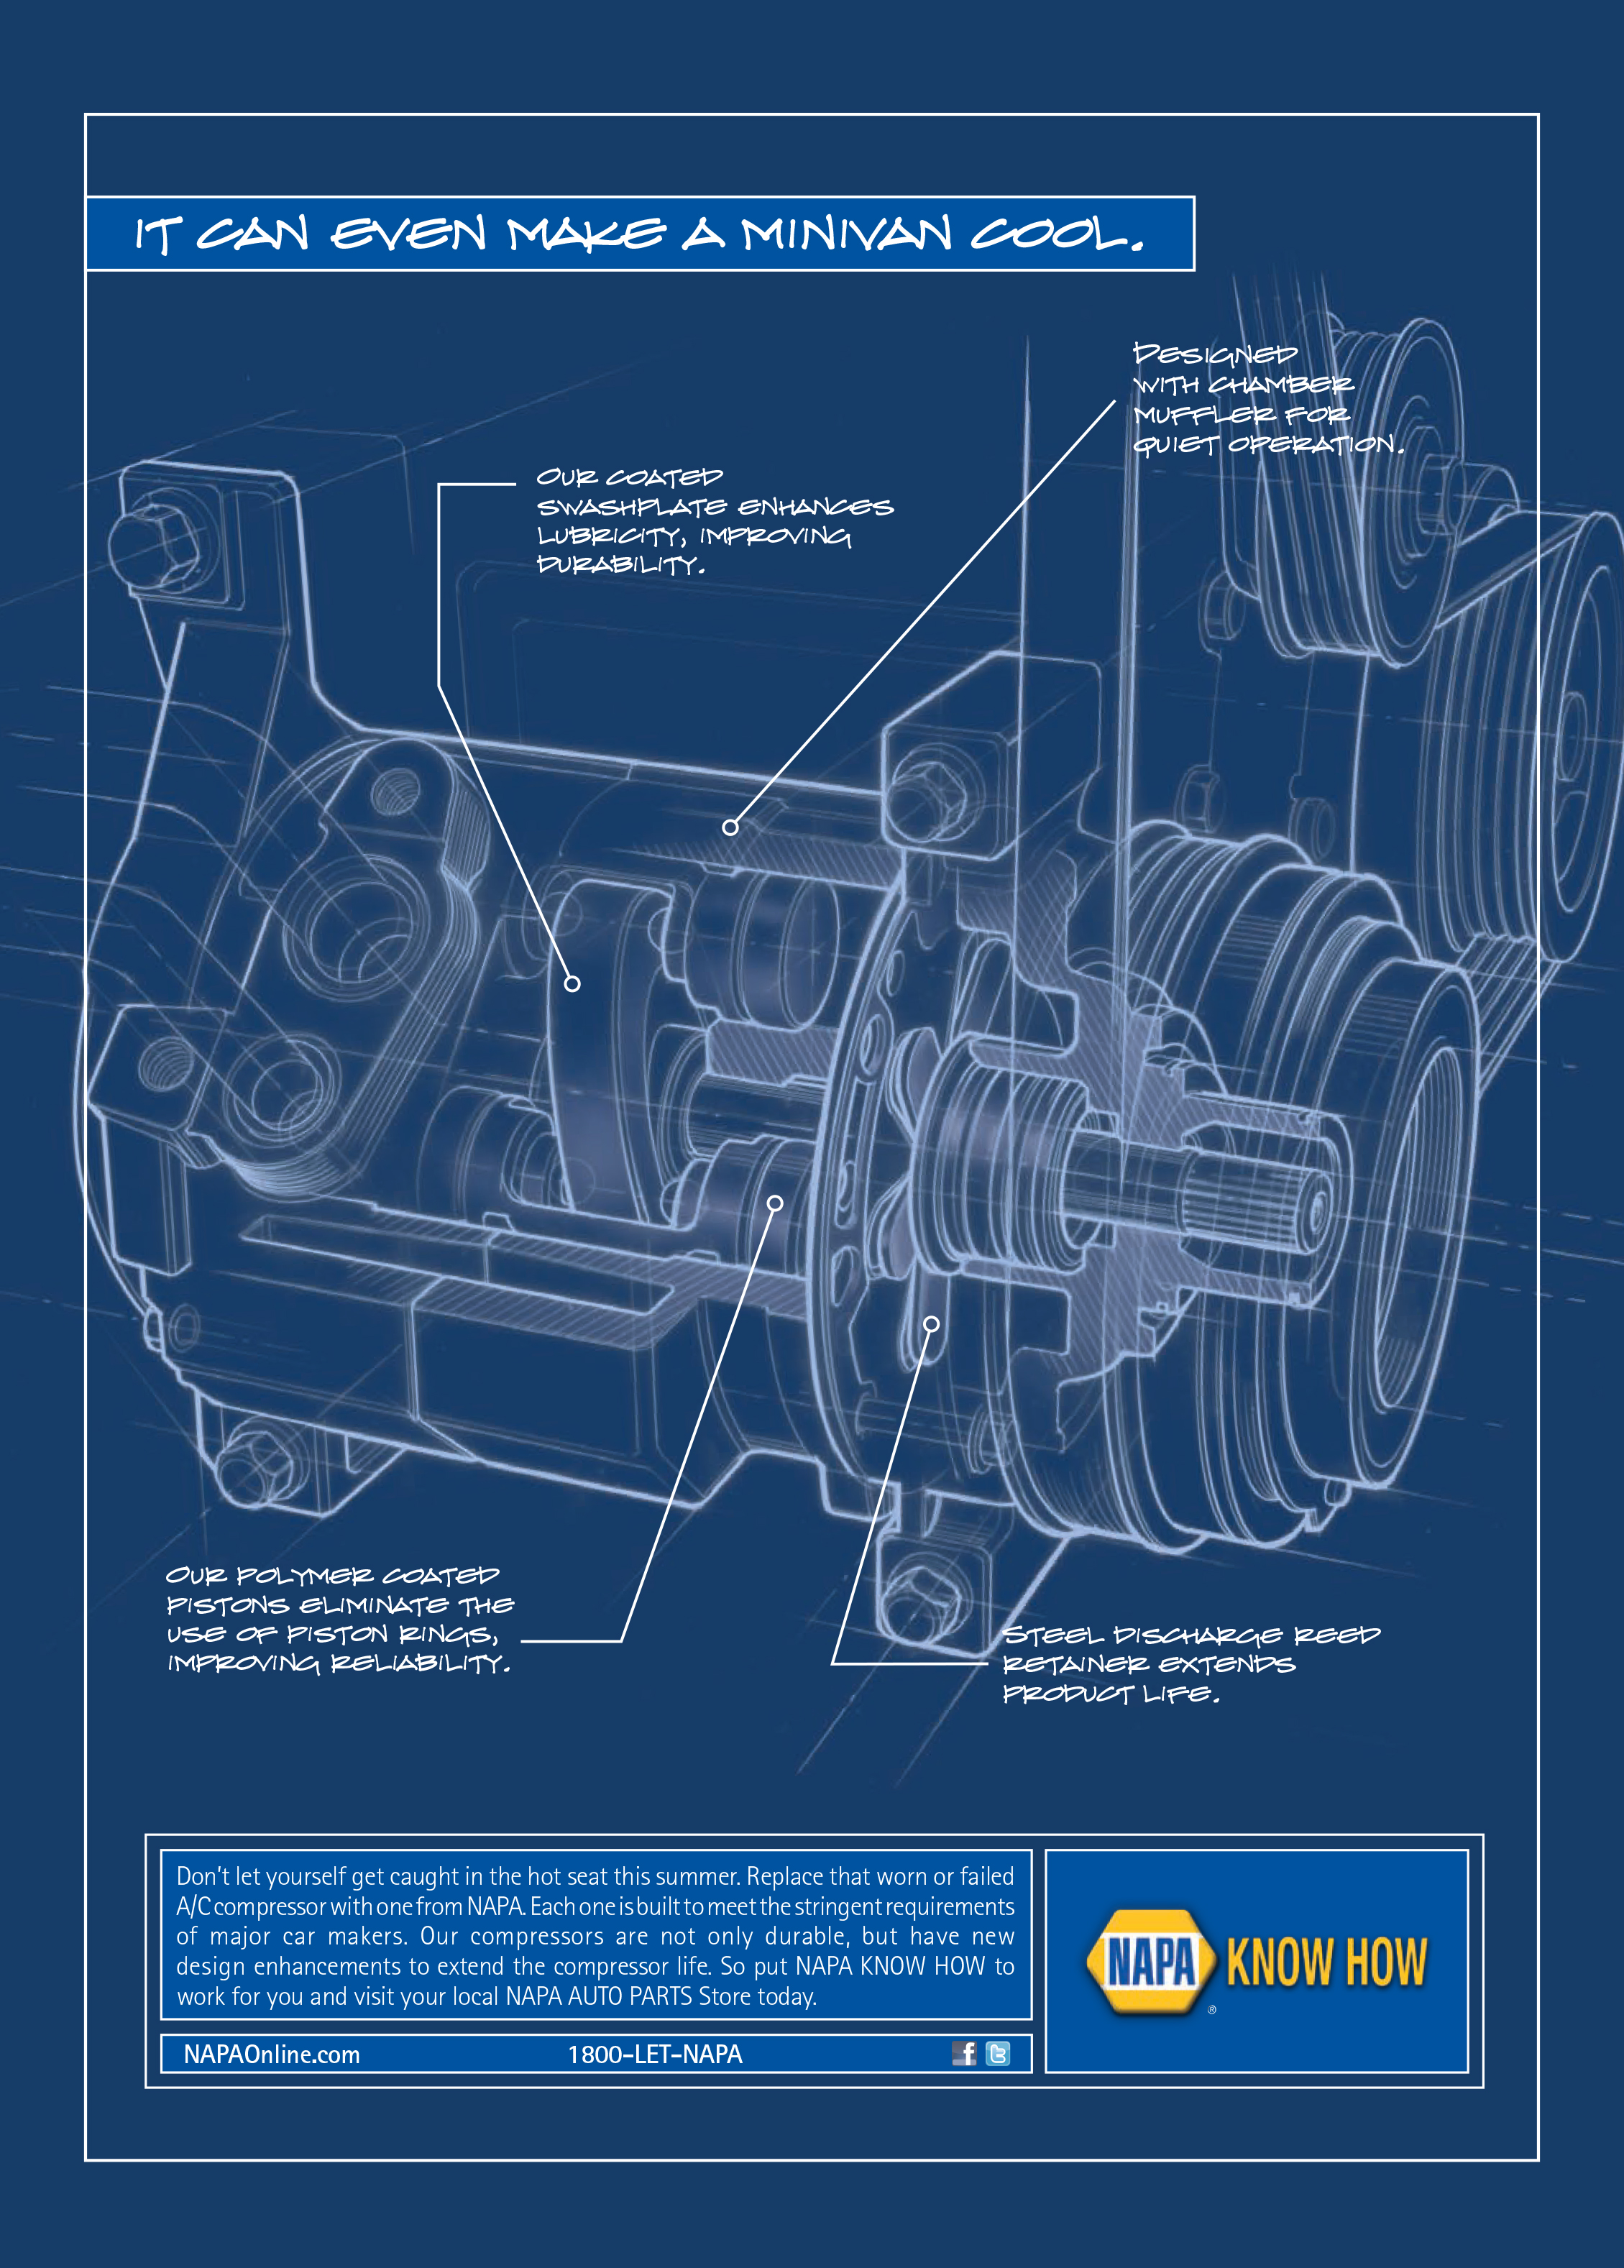 T1-8766A-7 Blueprint 2011 Print Ads_Cropped.jpg